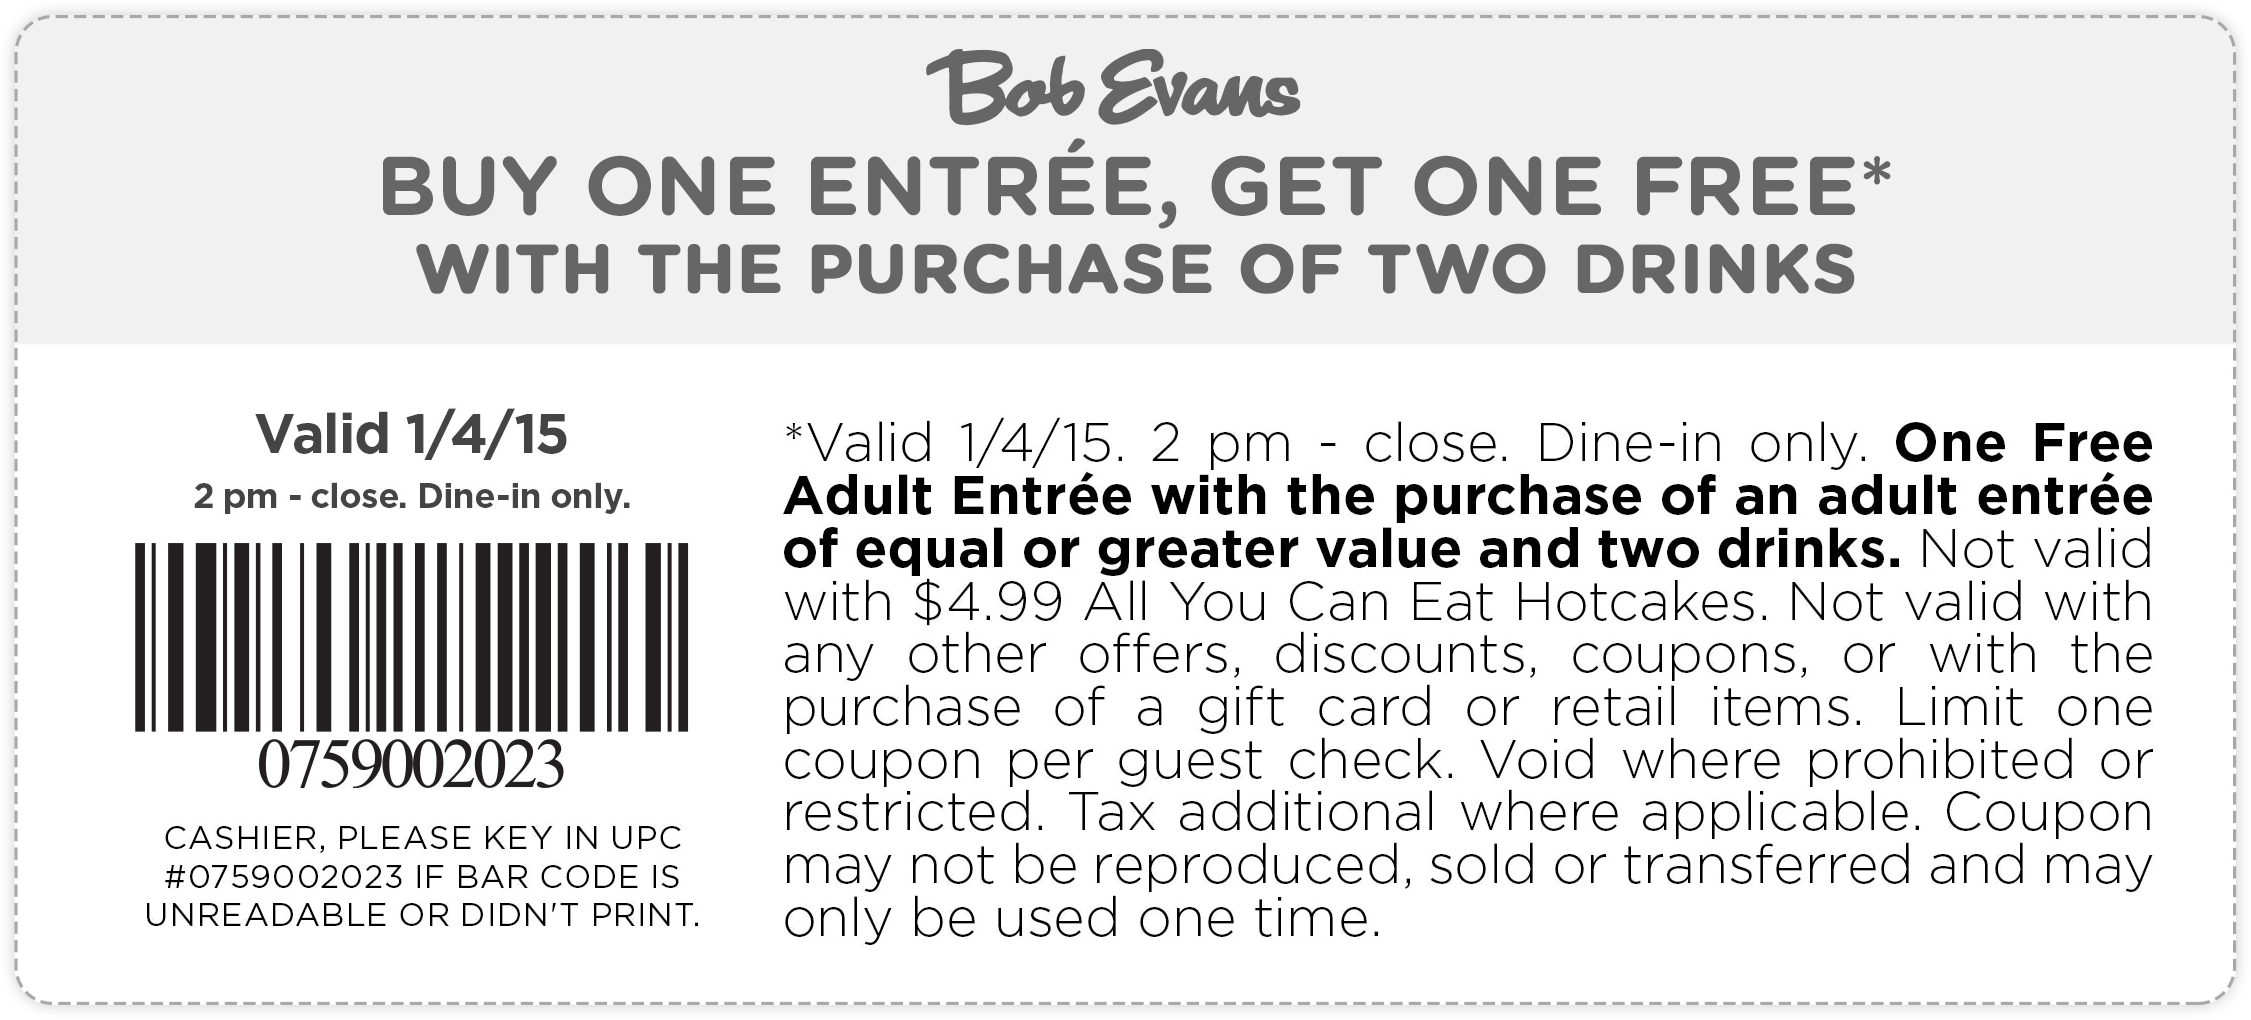 Bob Evans Coupon December 2016 Second entree free today at Bob Evans